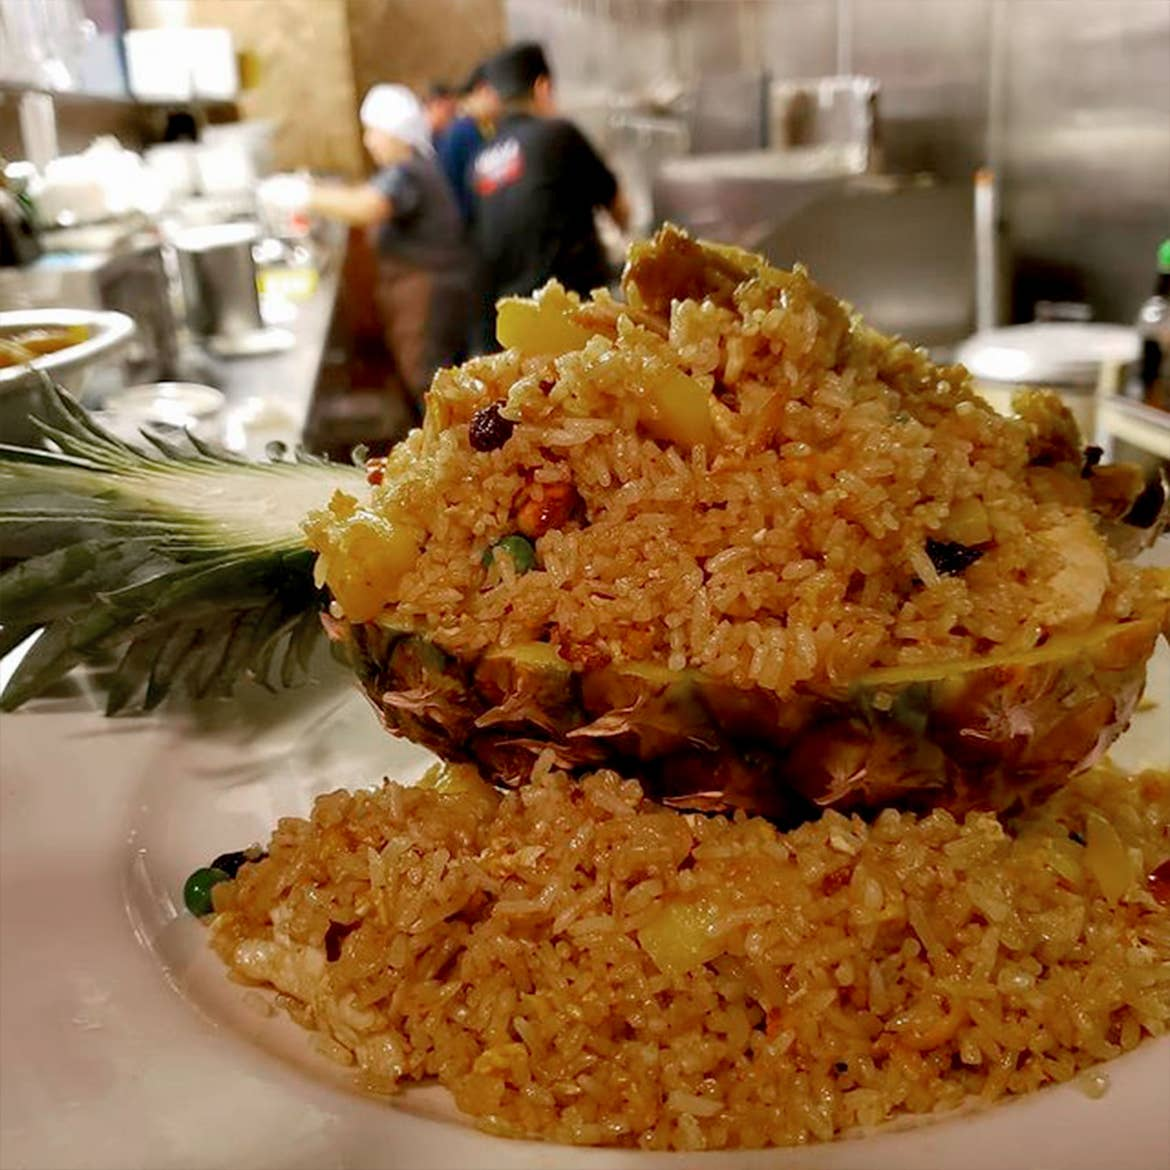 Pineapple fried rice on a plate sitting in the expo window of the kitchen ready to be served.